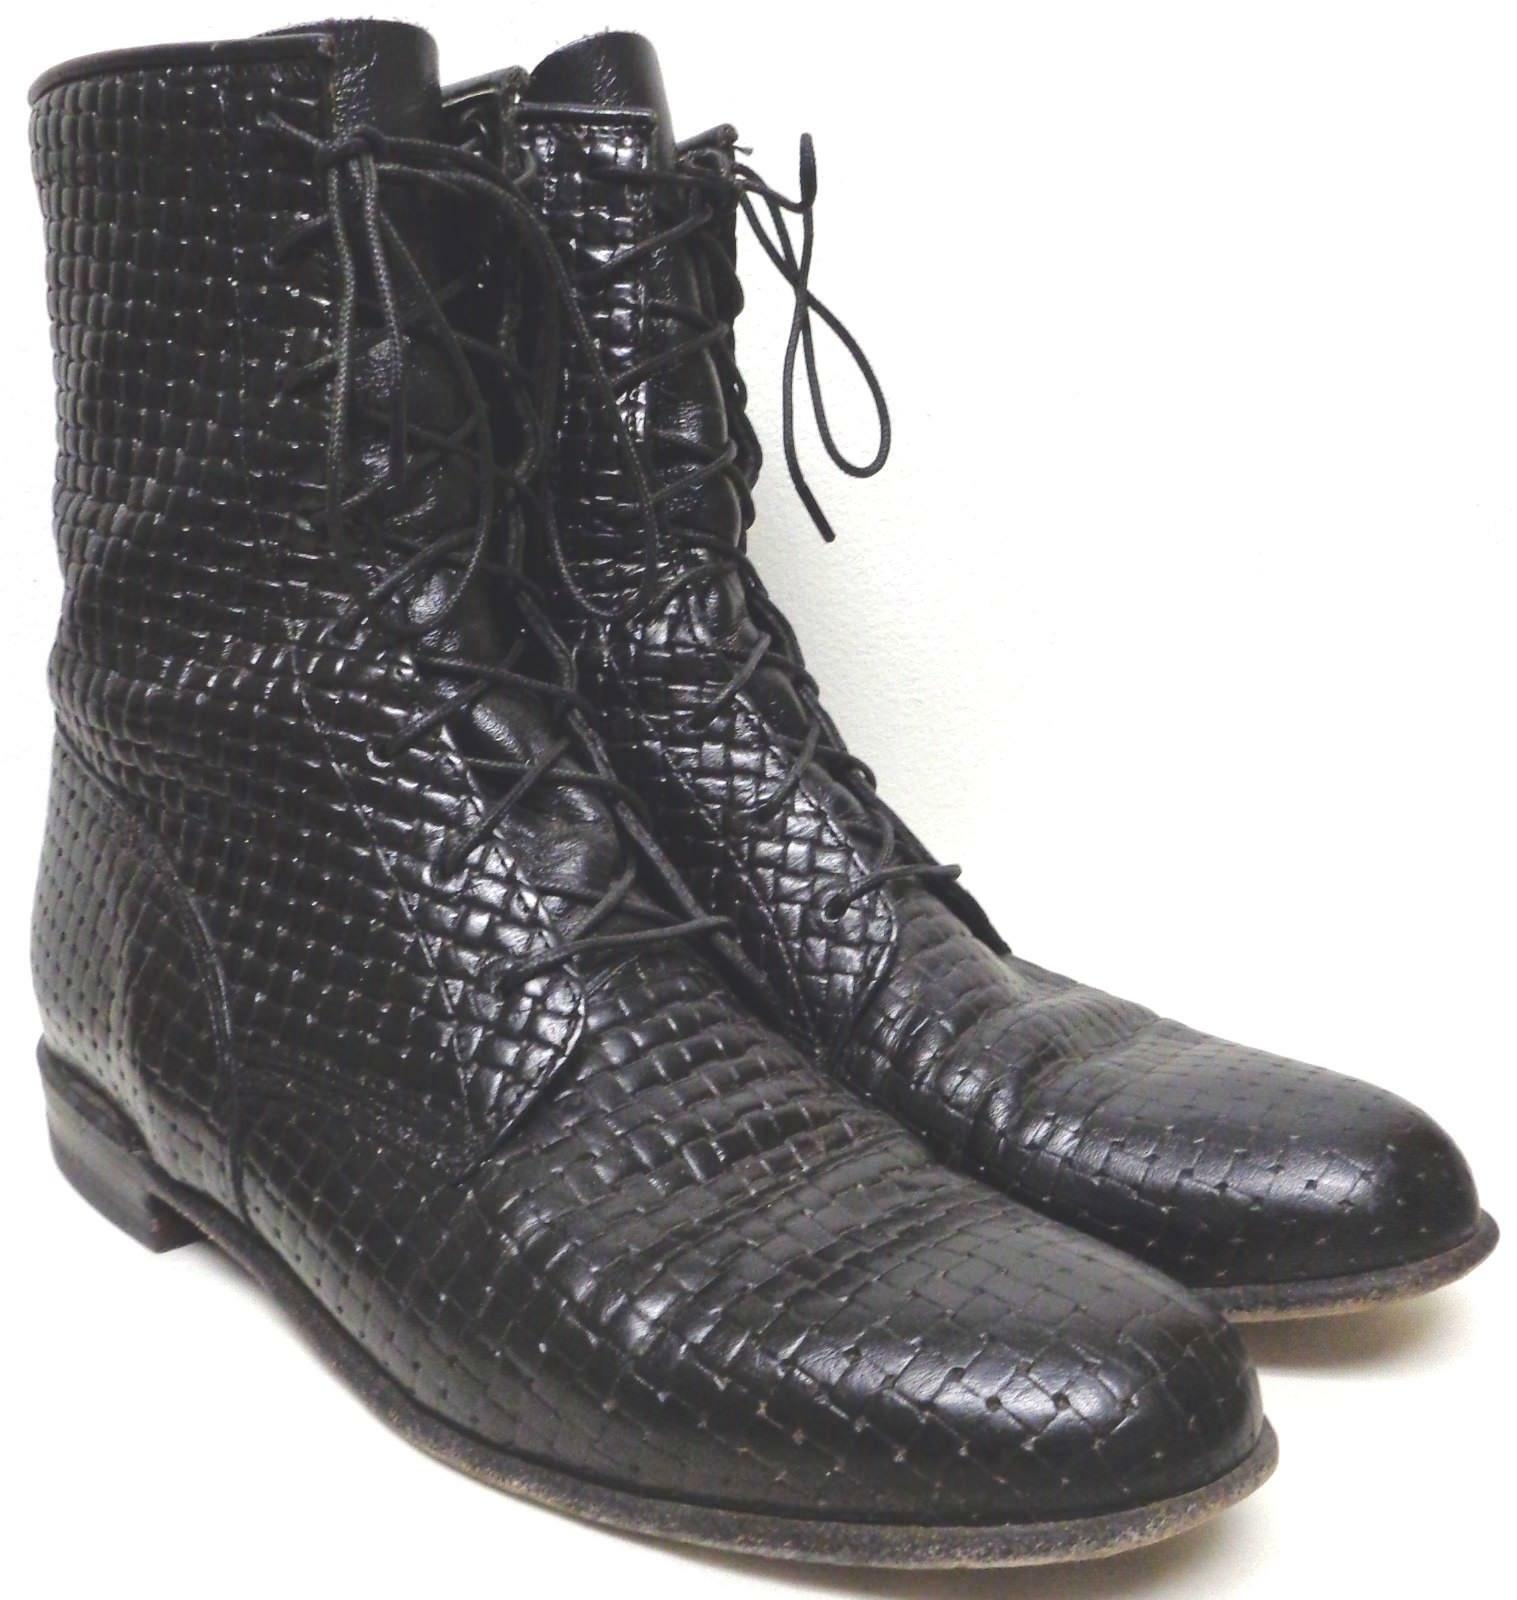 VINTAGE JUSTIN BLACK WOVEN LEATHER LOOK LACE UP WORK BOOTS 1990's AMAZING SZ 6B